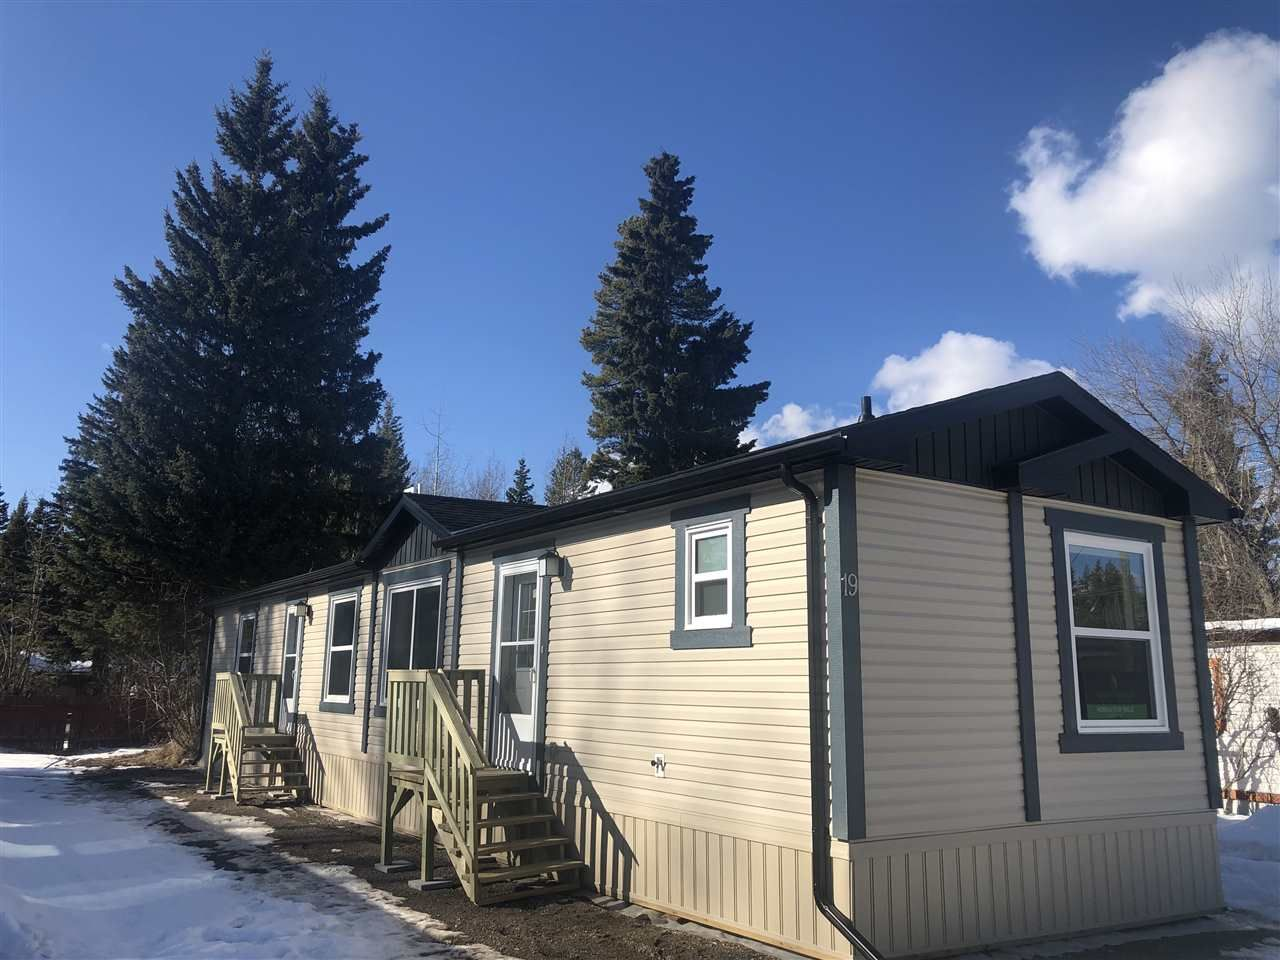 """Main Photo: 19 8474 BUNCE Road in Prince George: Haldi Manufactured Home for sale in """"TRAILER VILLAGE"""" (PG City South (Zone 74))  : MLS®# R2556298"""